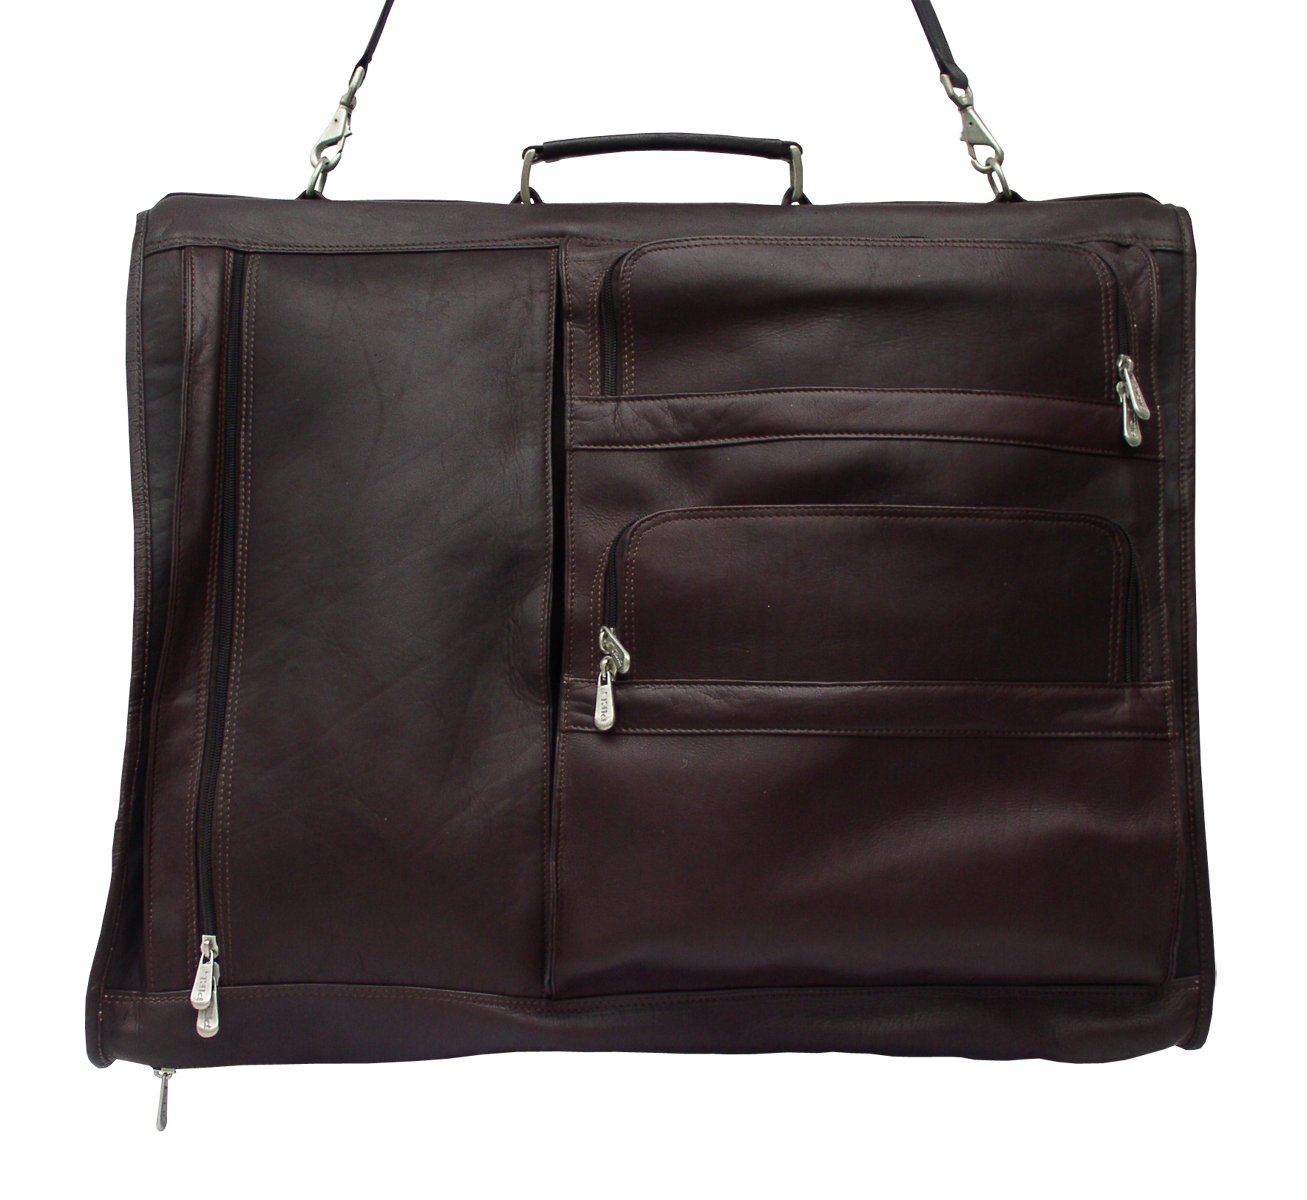 Piel Leather Traveler Executive Expandable Garment Bag in Chocolate